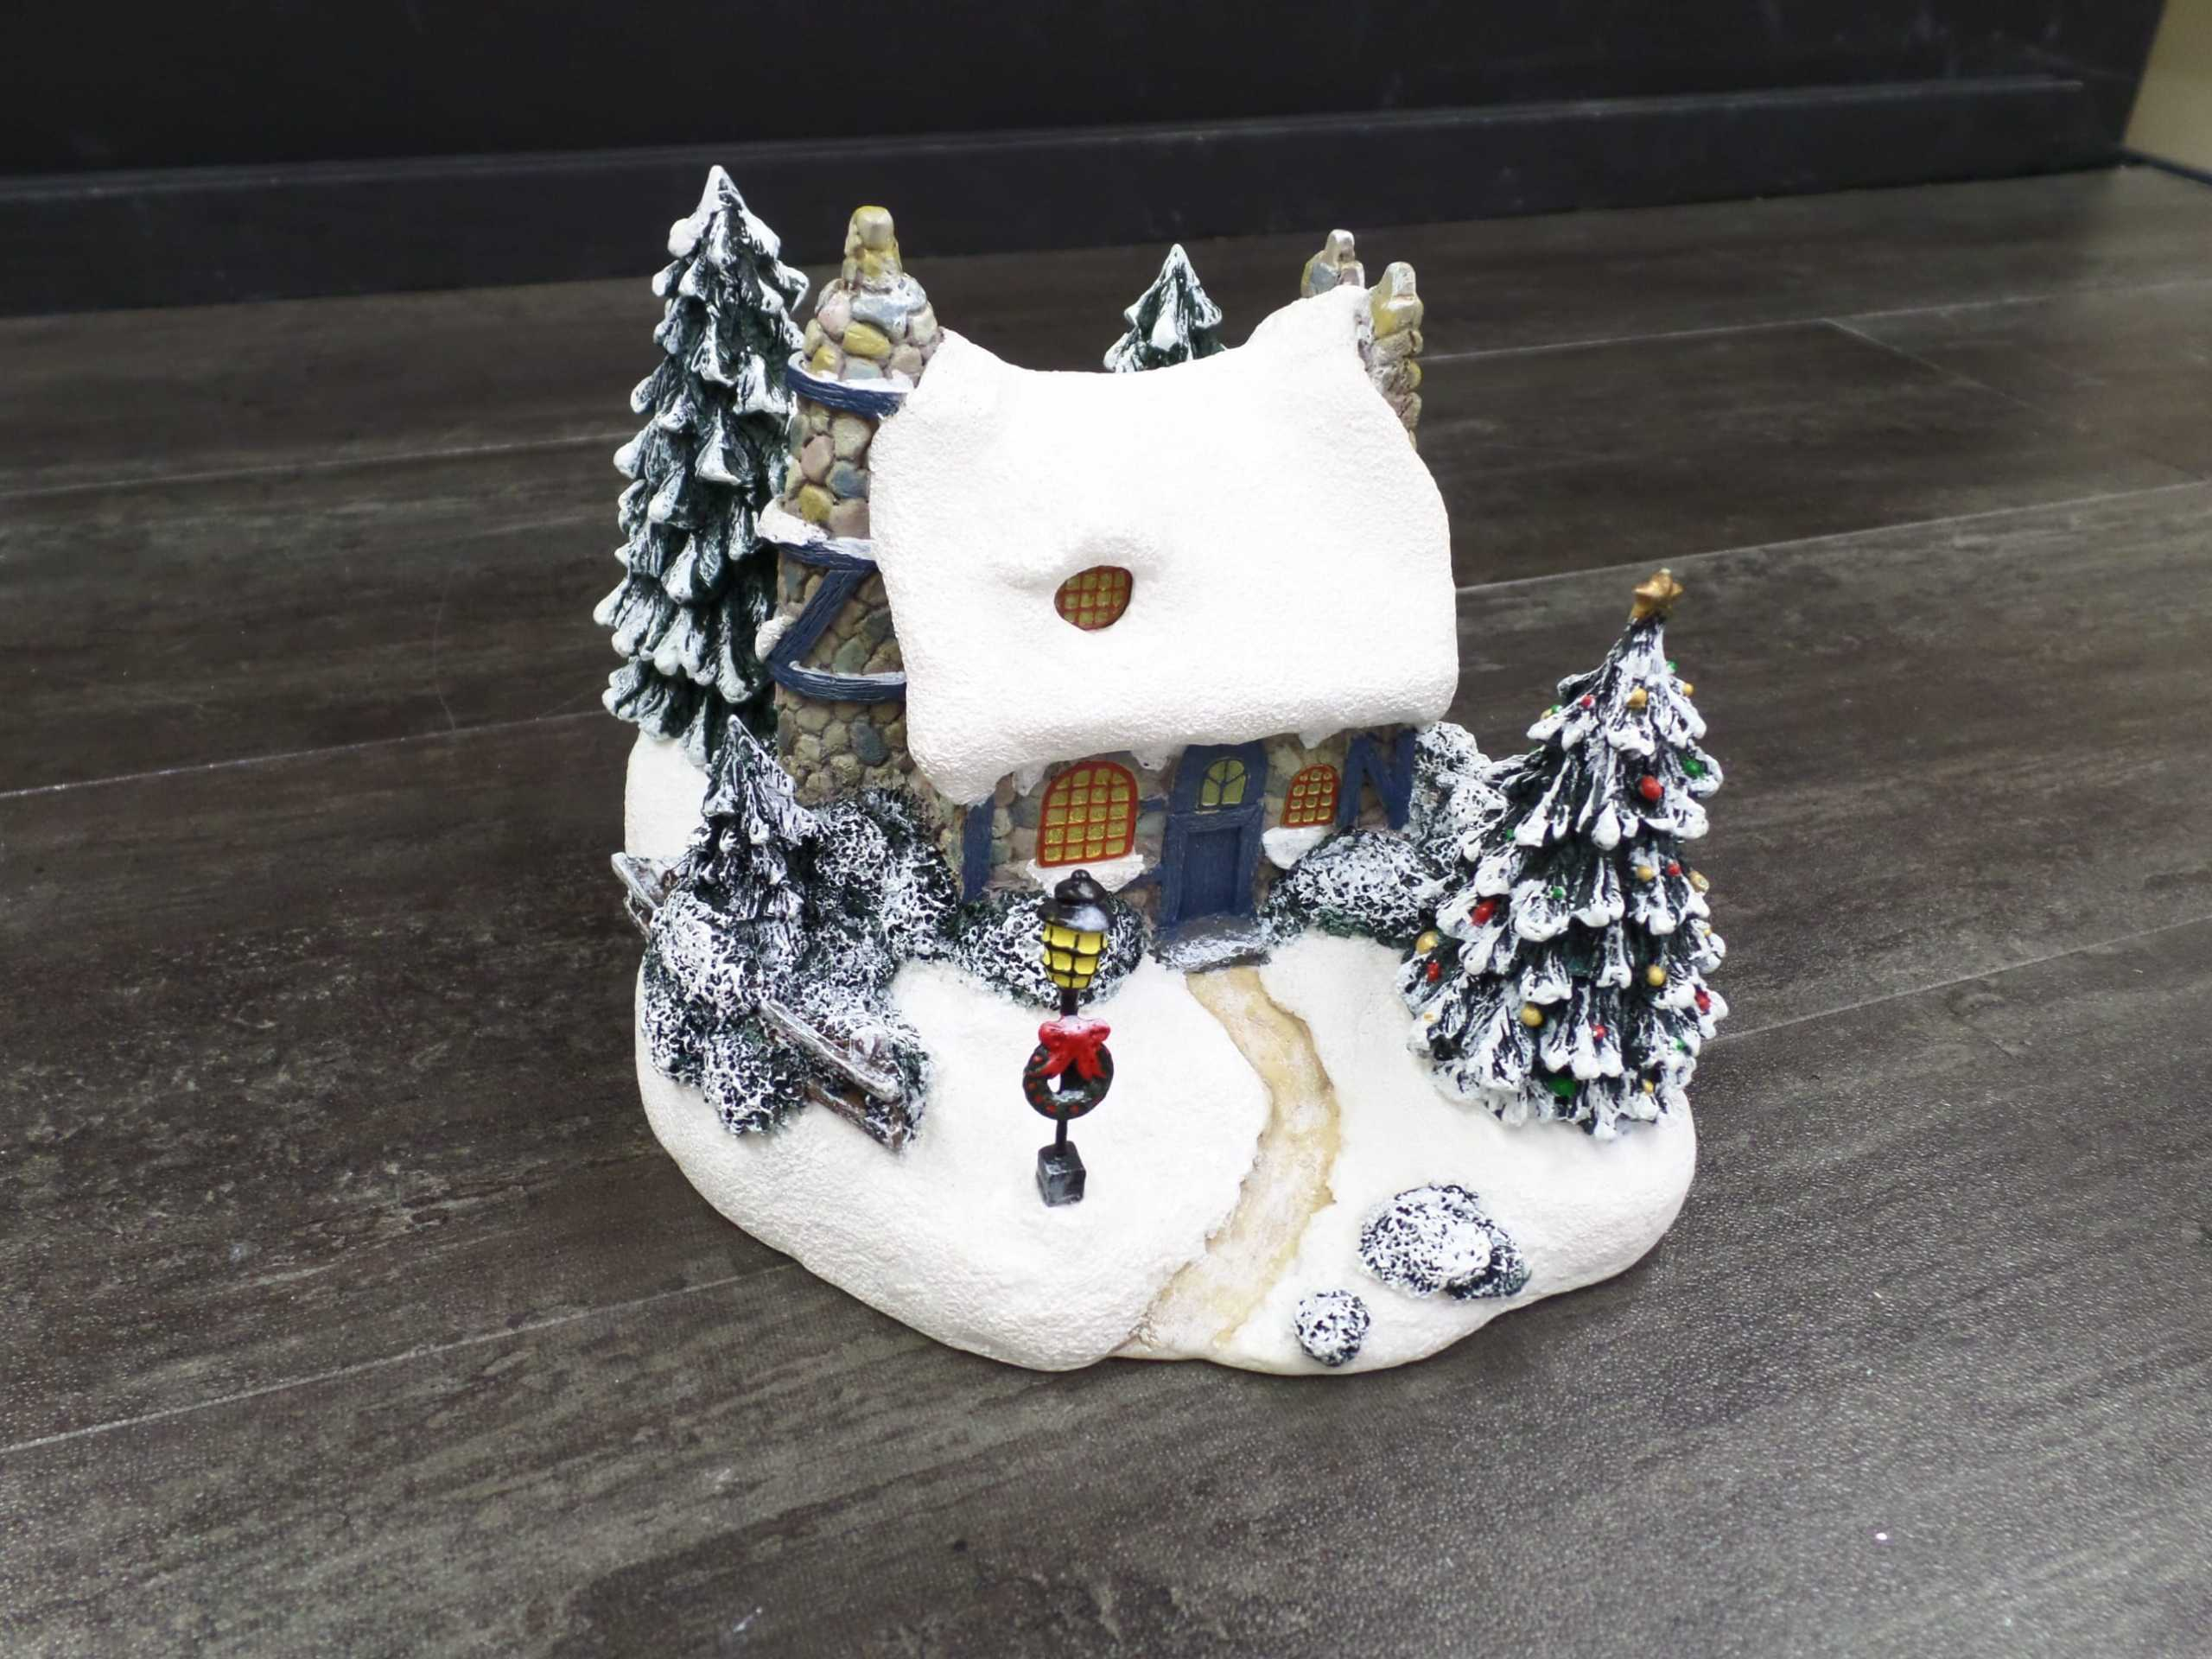 2001 THOMAS KINKADE CHRISTMAS VILLAGE HOUSE <br/> Donated by: WPBS SUPPORTER <br/> Valued at: $16 <br/> Buy It Now: $11